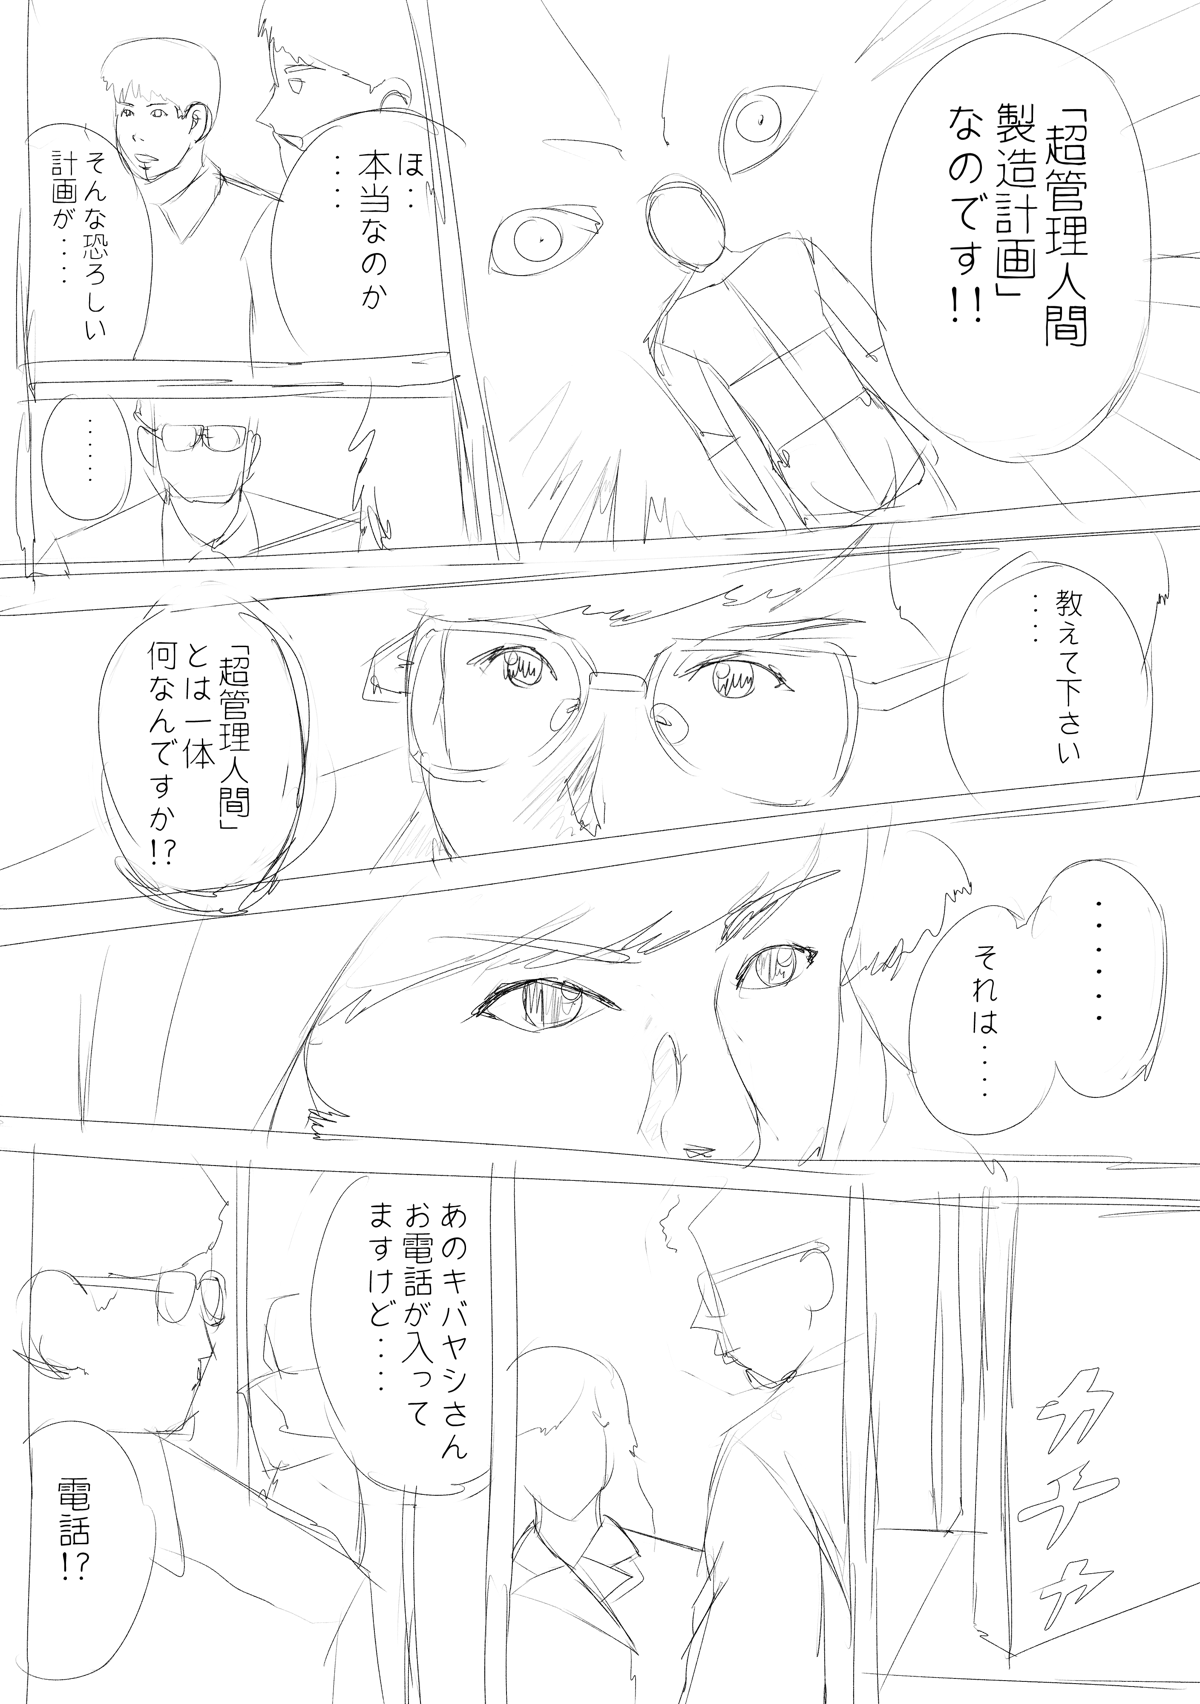 MMR漫画 「聖書外典エノク書の謎を追え!!」ラフ その1